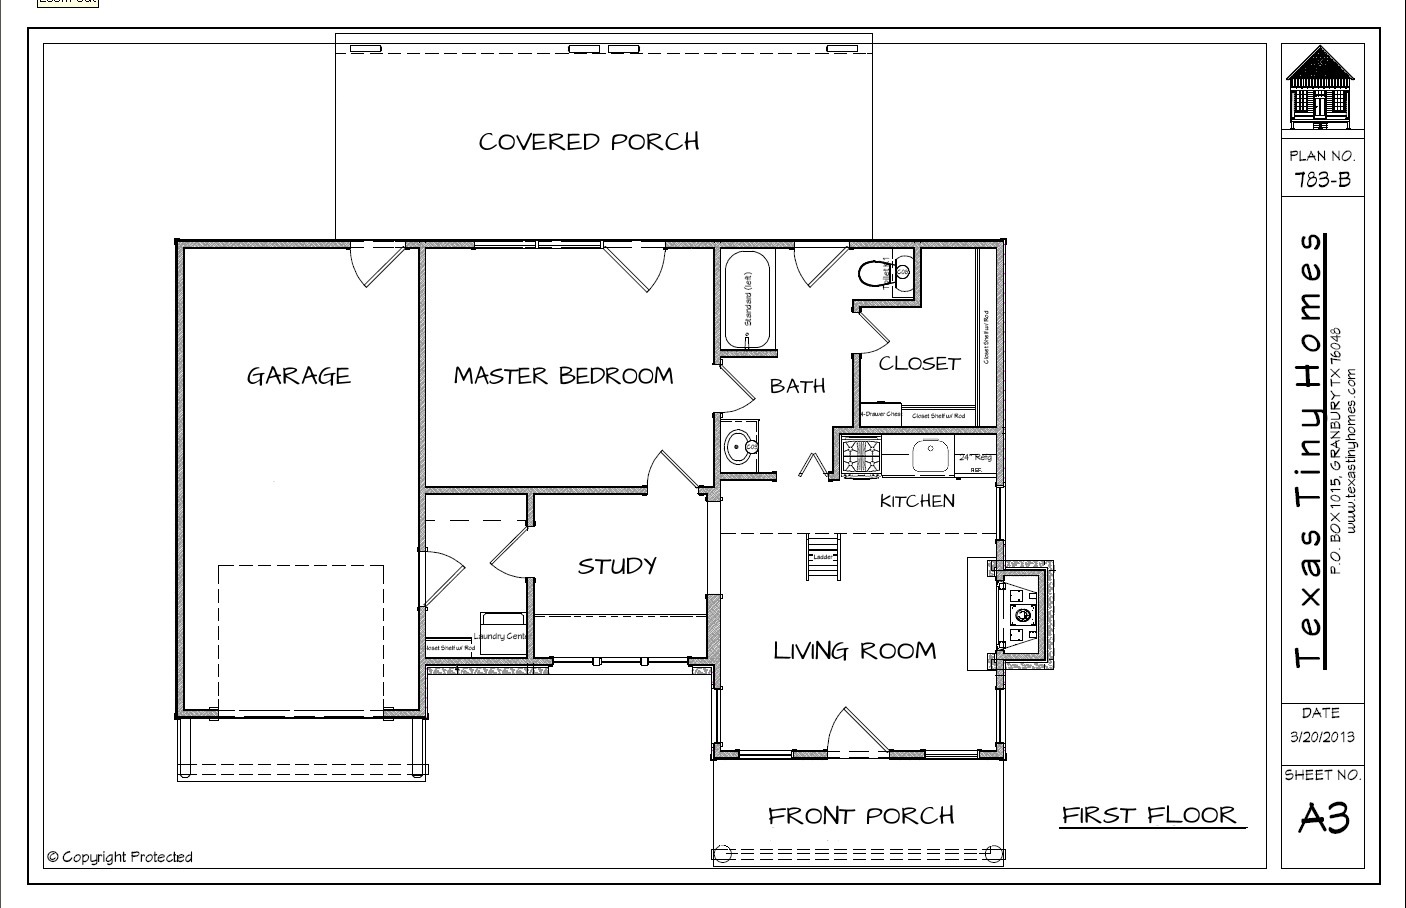 Plan 783 texas tiny homes - Home design sheets ...